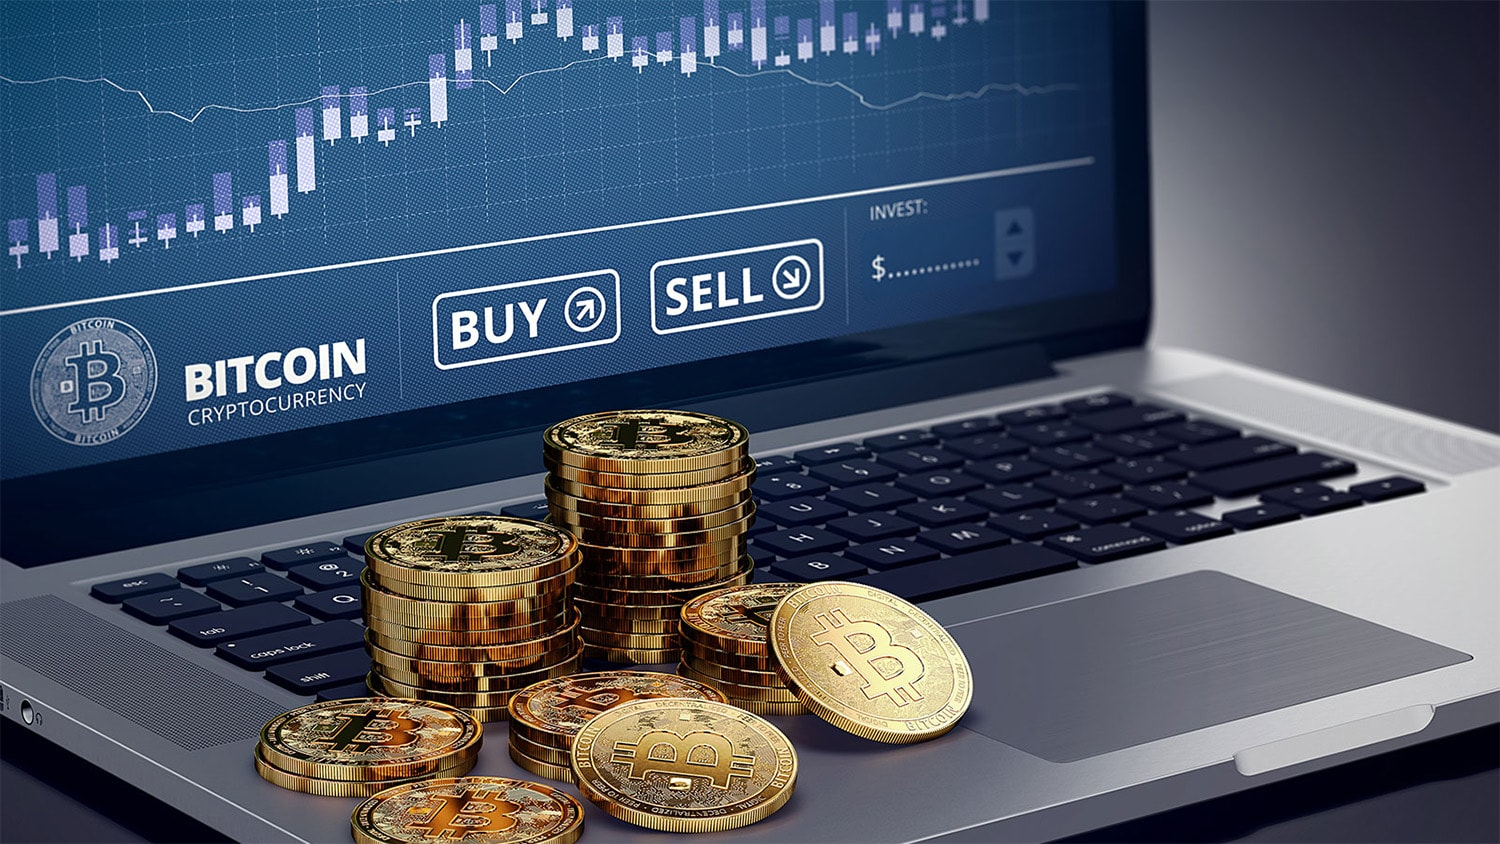 New Report Warns 87 Percent of Cryptocurrency Exchange Volume Is Potentially Suspicious